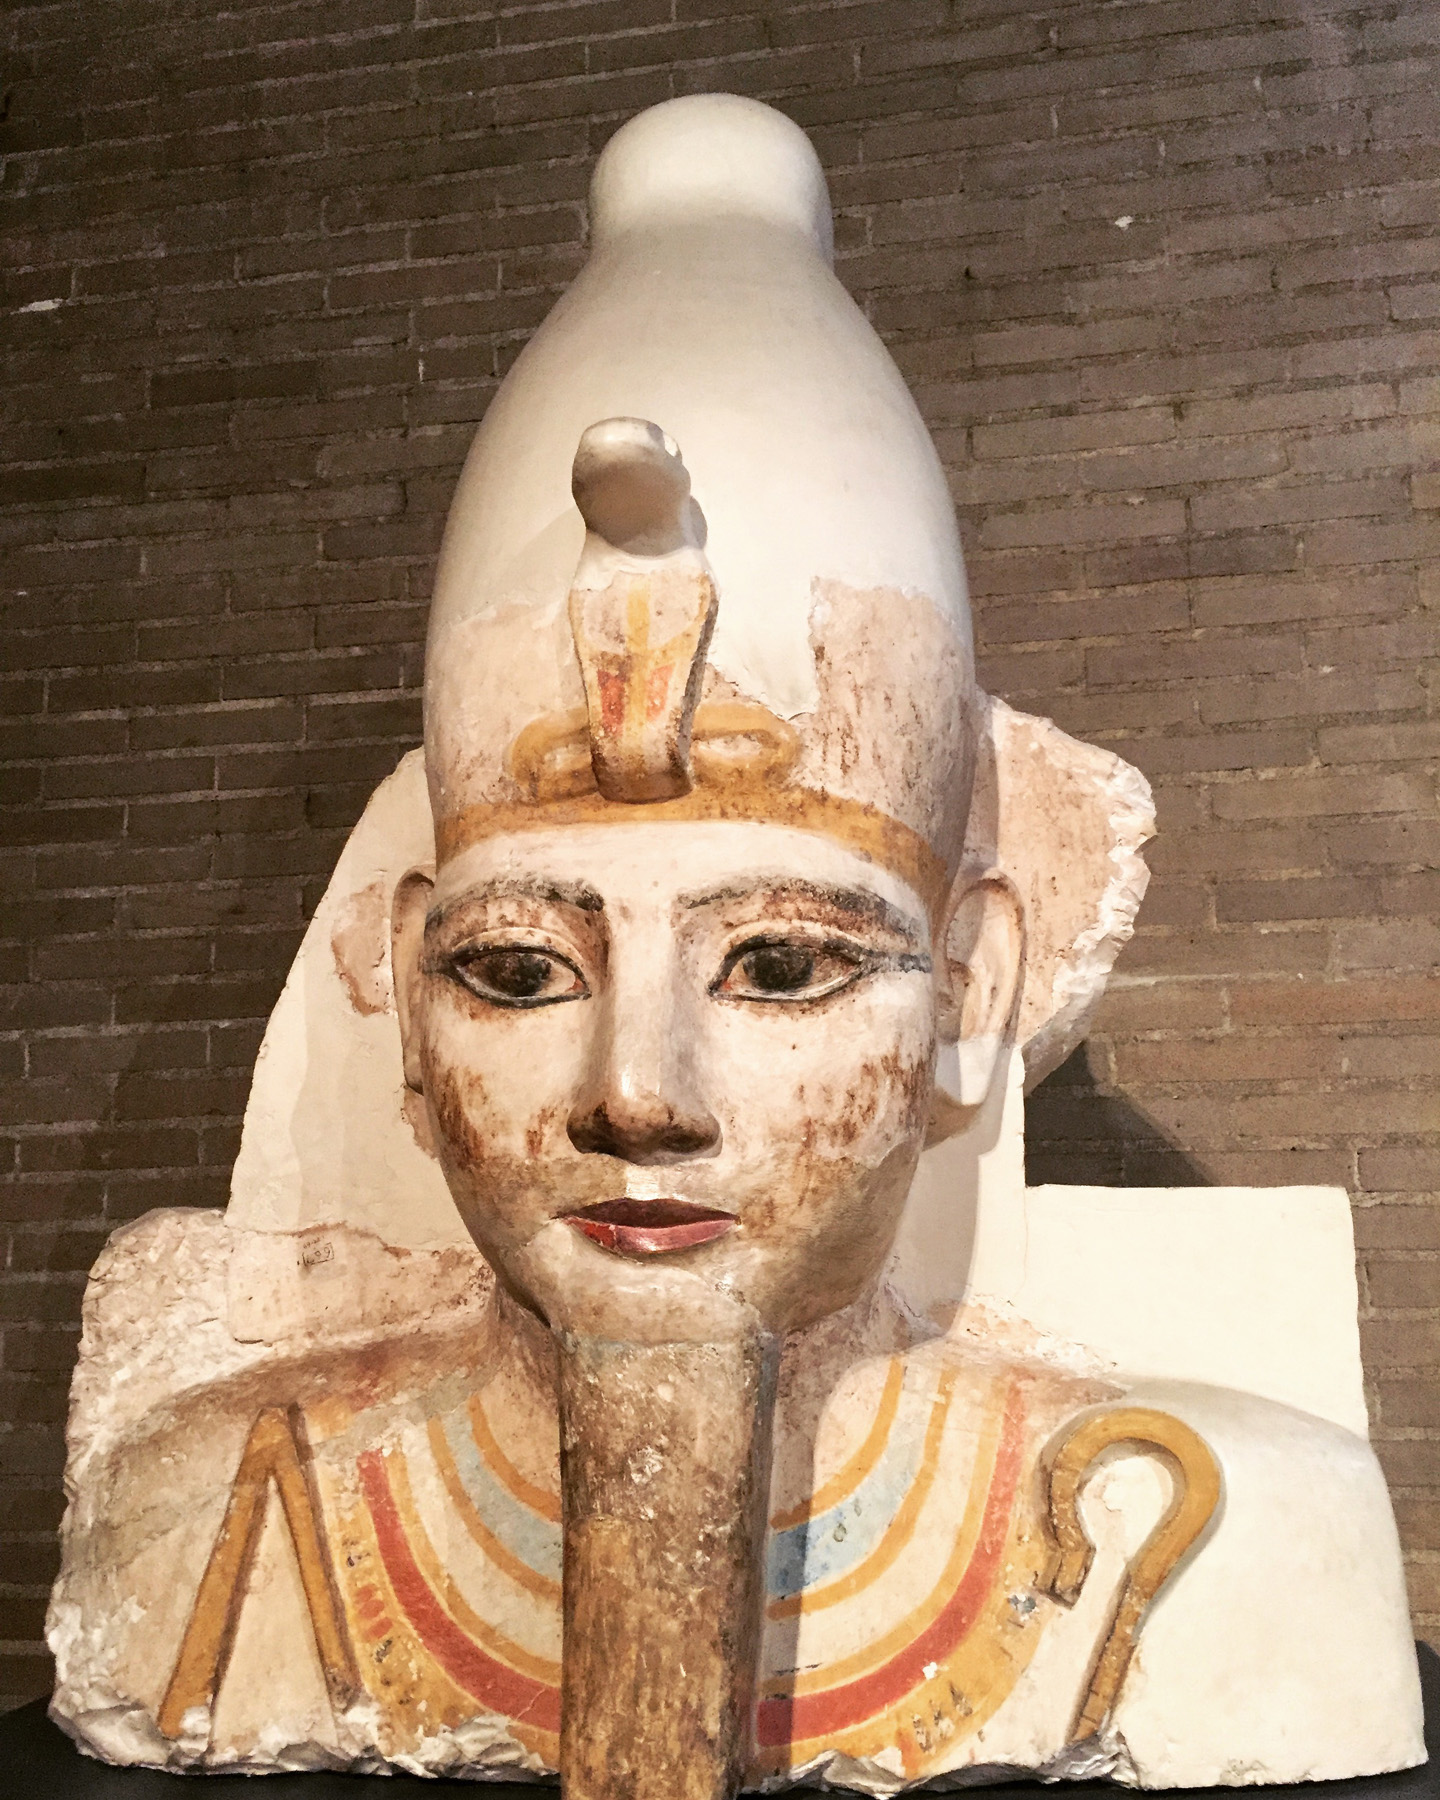 Fig. 6. This colossal head of Ramses II, one of the most powerful kings in history, was among the first finds of the first season of Penn-Yale excavations at Abydos in 1967. Today, it cuts an impressive figure in the Egyptian galleries of the University of Pennsylvania Museum of Archaeology and Anthropology. Photo: Wendy Doyon © North Abydos Expedition 2018